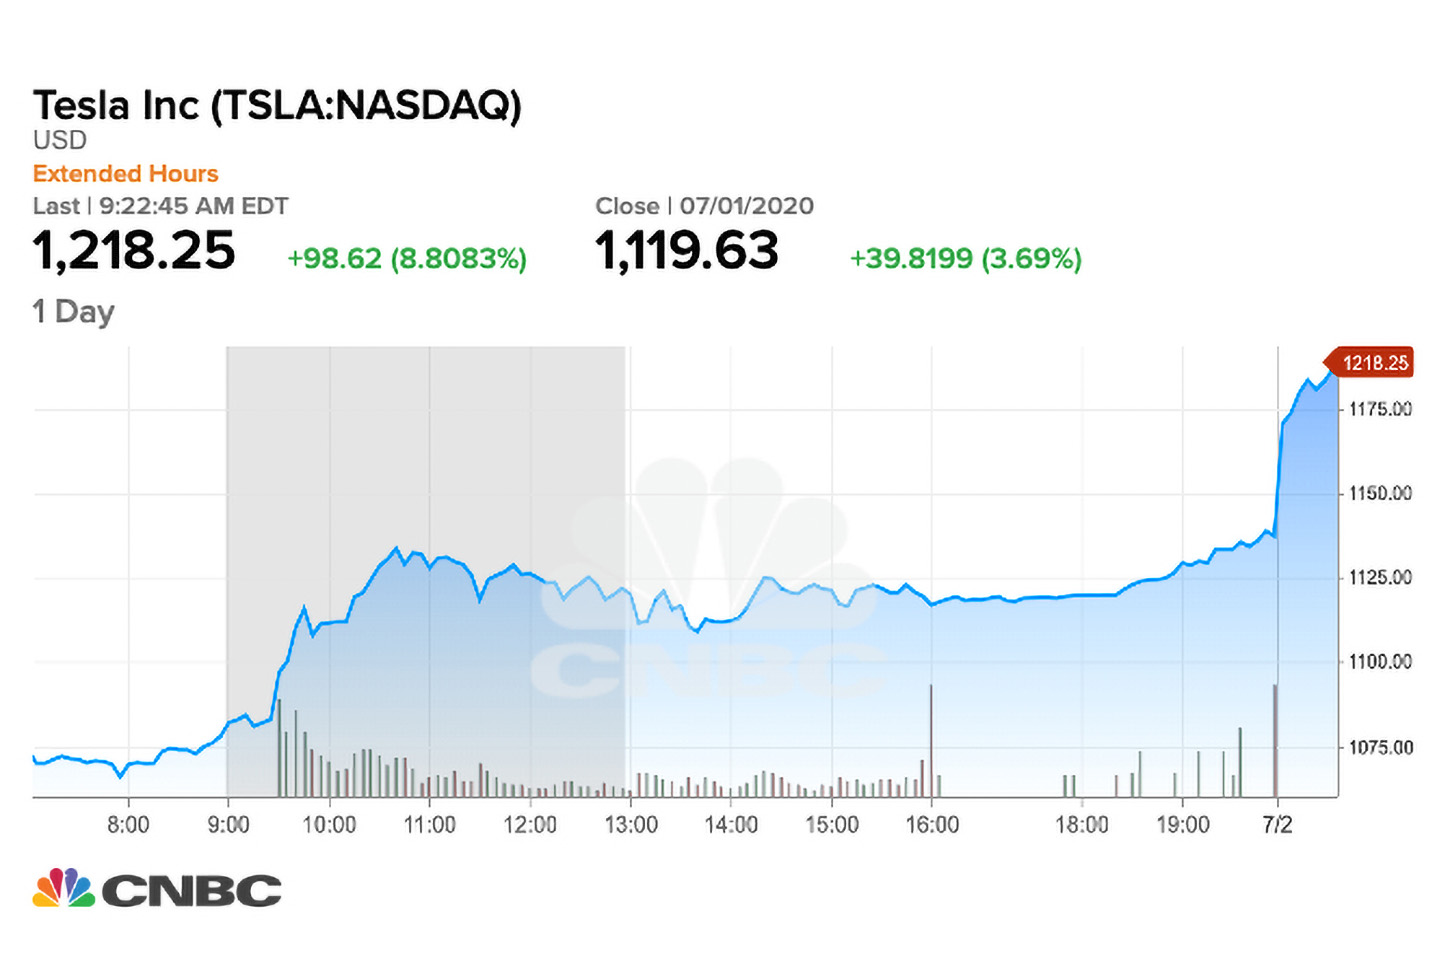 Tesla's share price exceeded $ 1,200 prior to the IPO